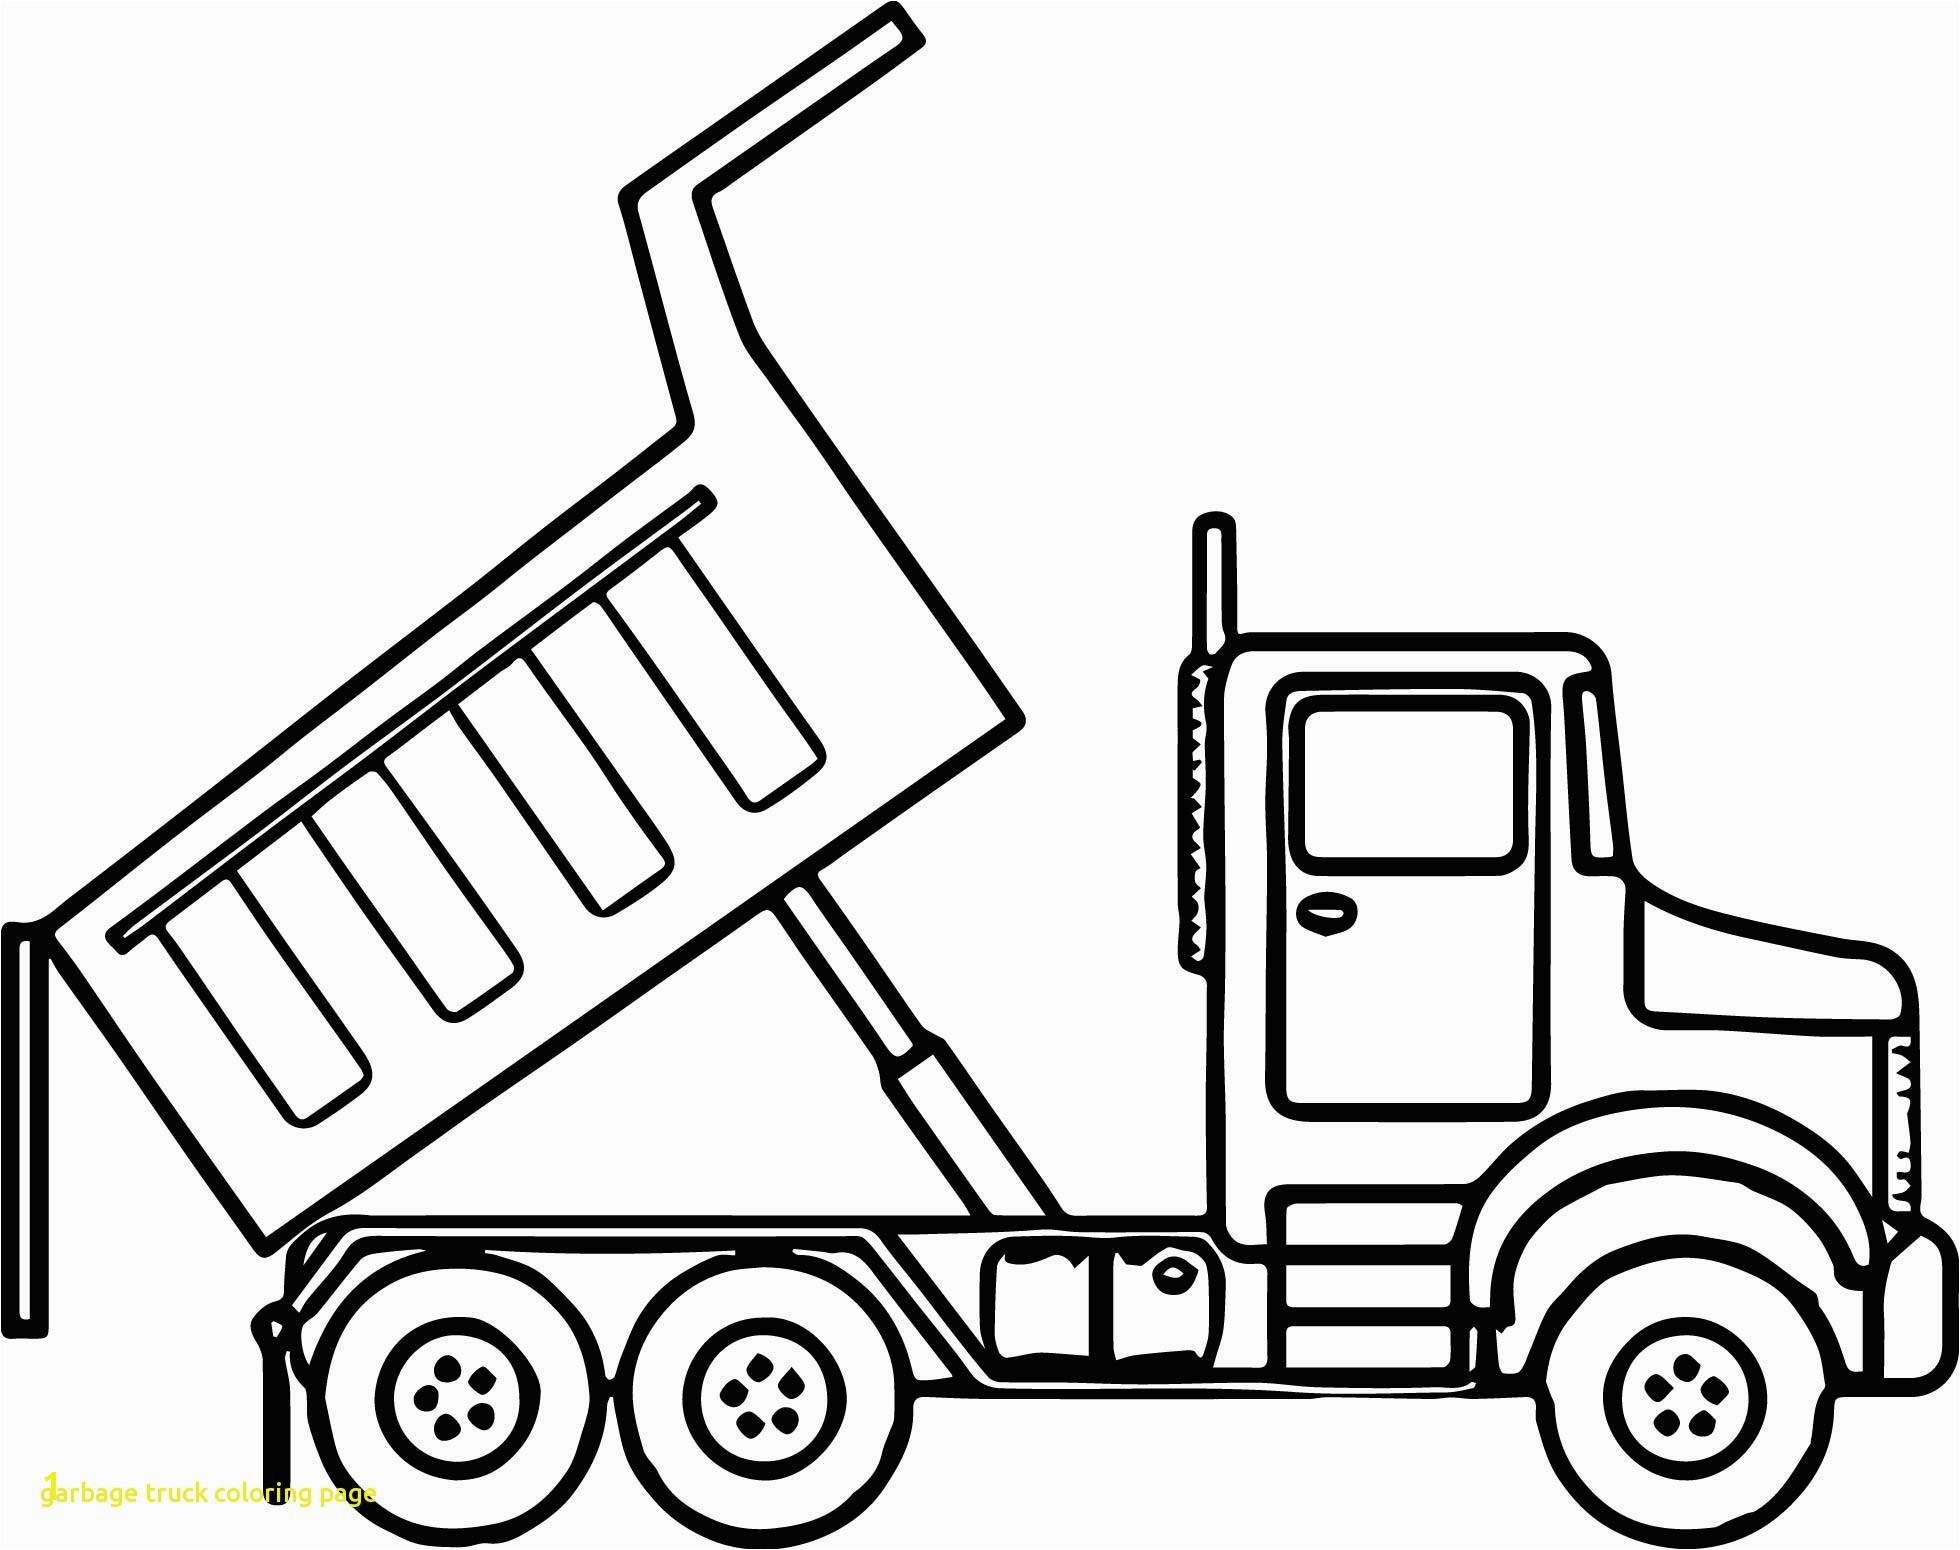 Mail Truck Coloring Page Truck Coloring Pages Inspirational Truck Coloring Pages Best Truck